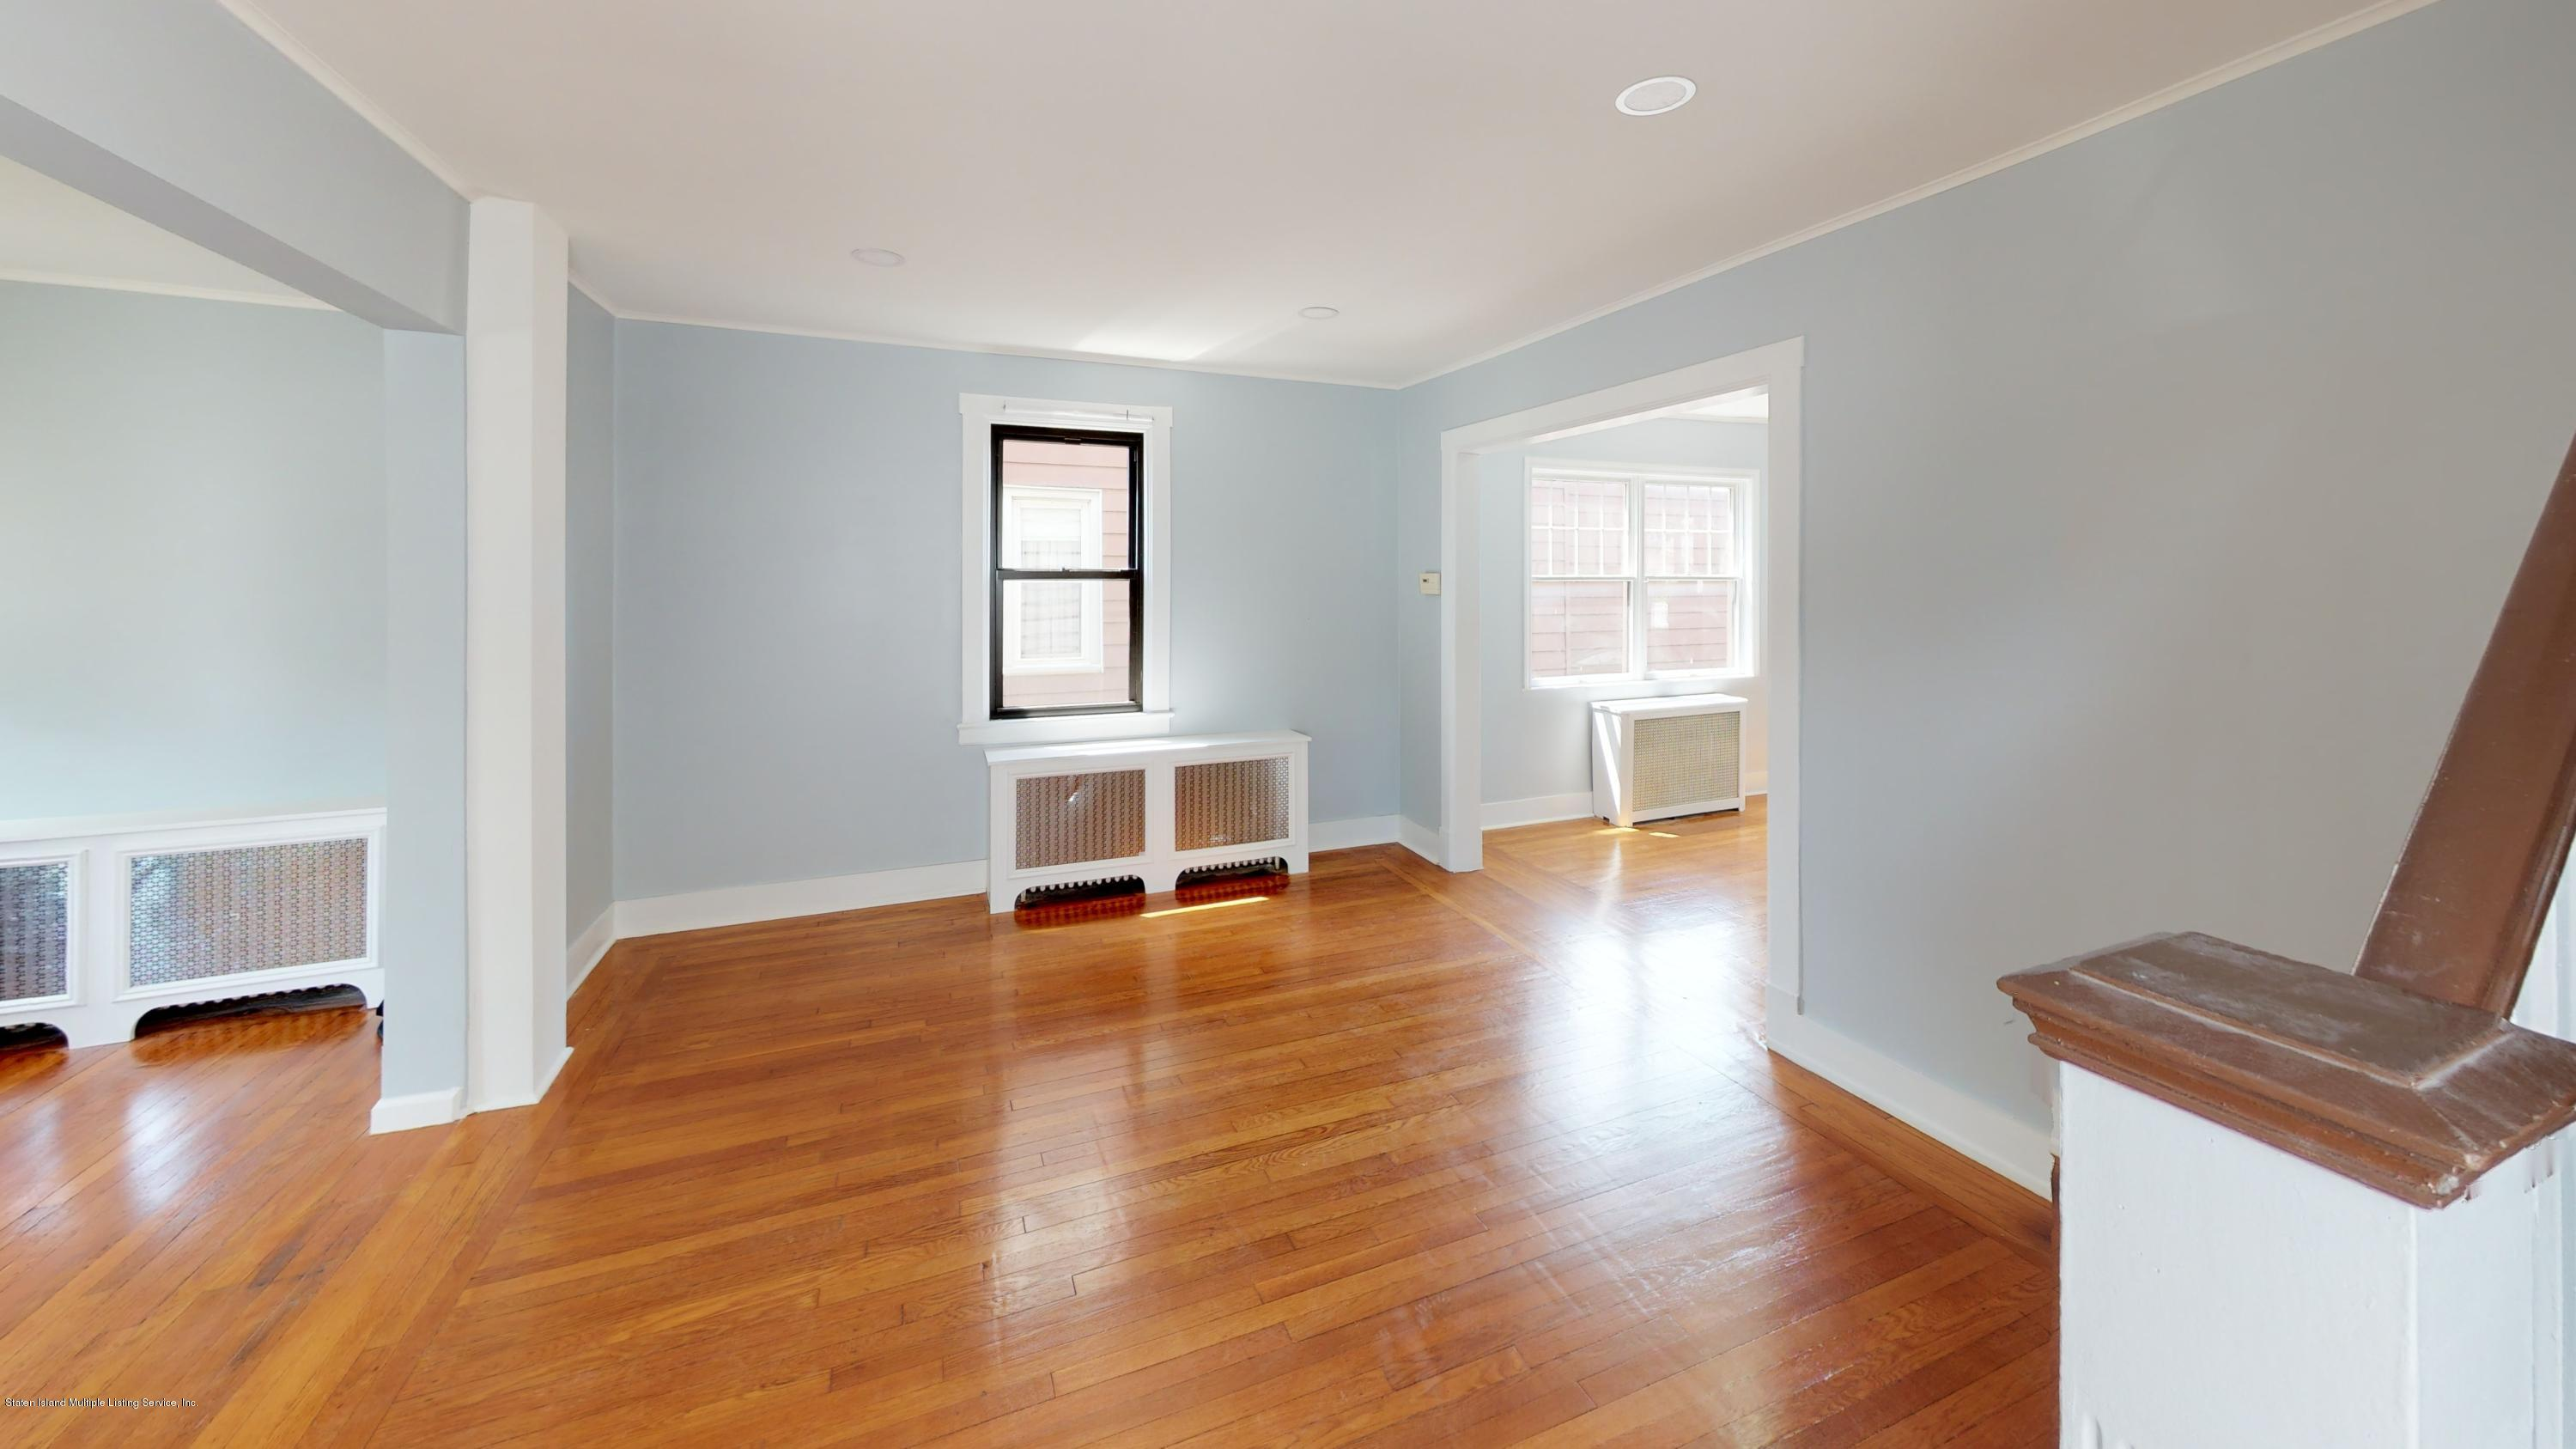 Single Family - Detached 54 Quinlan Avenue  Staten Island, NY 10314, MLS-1129378-27